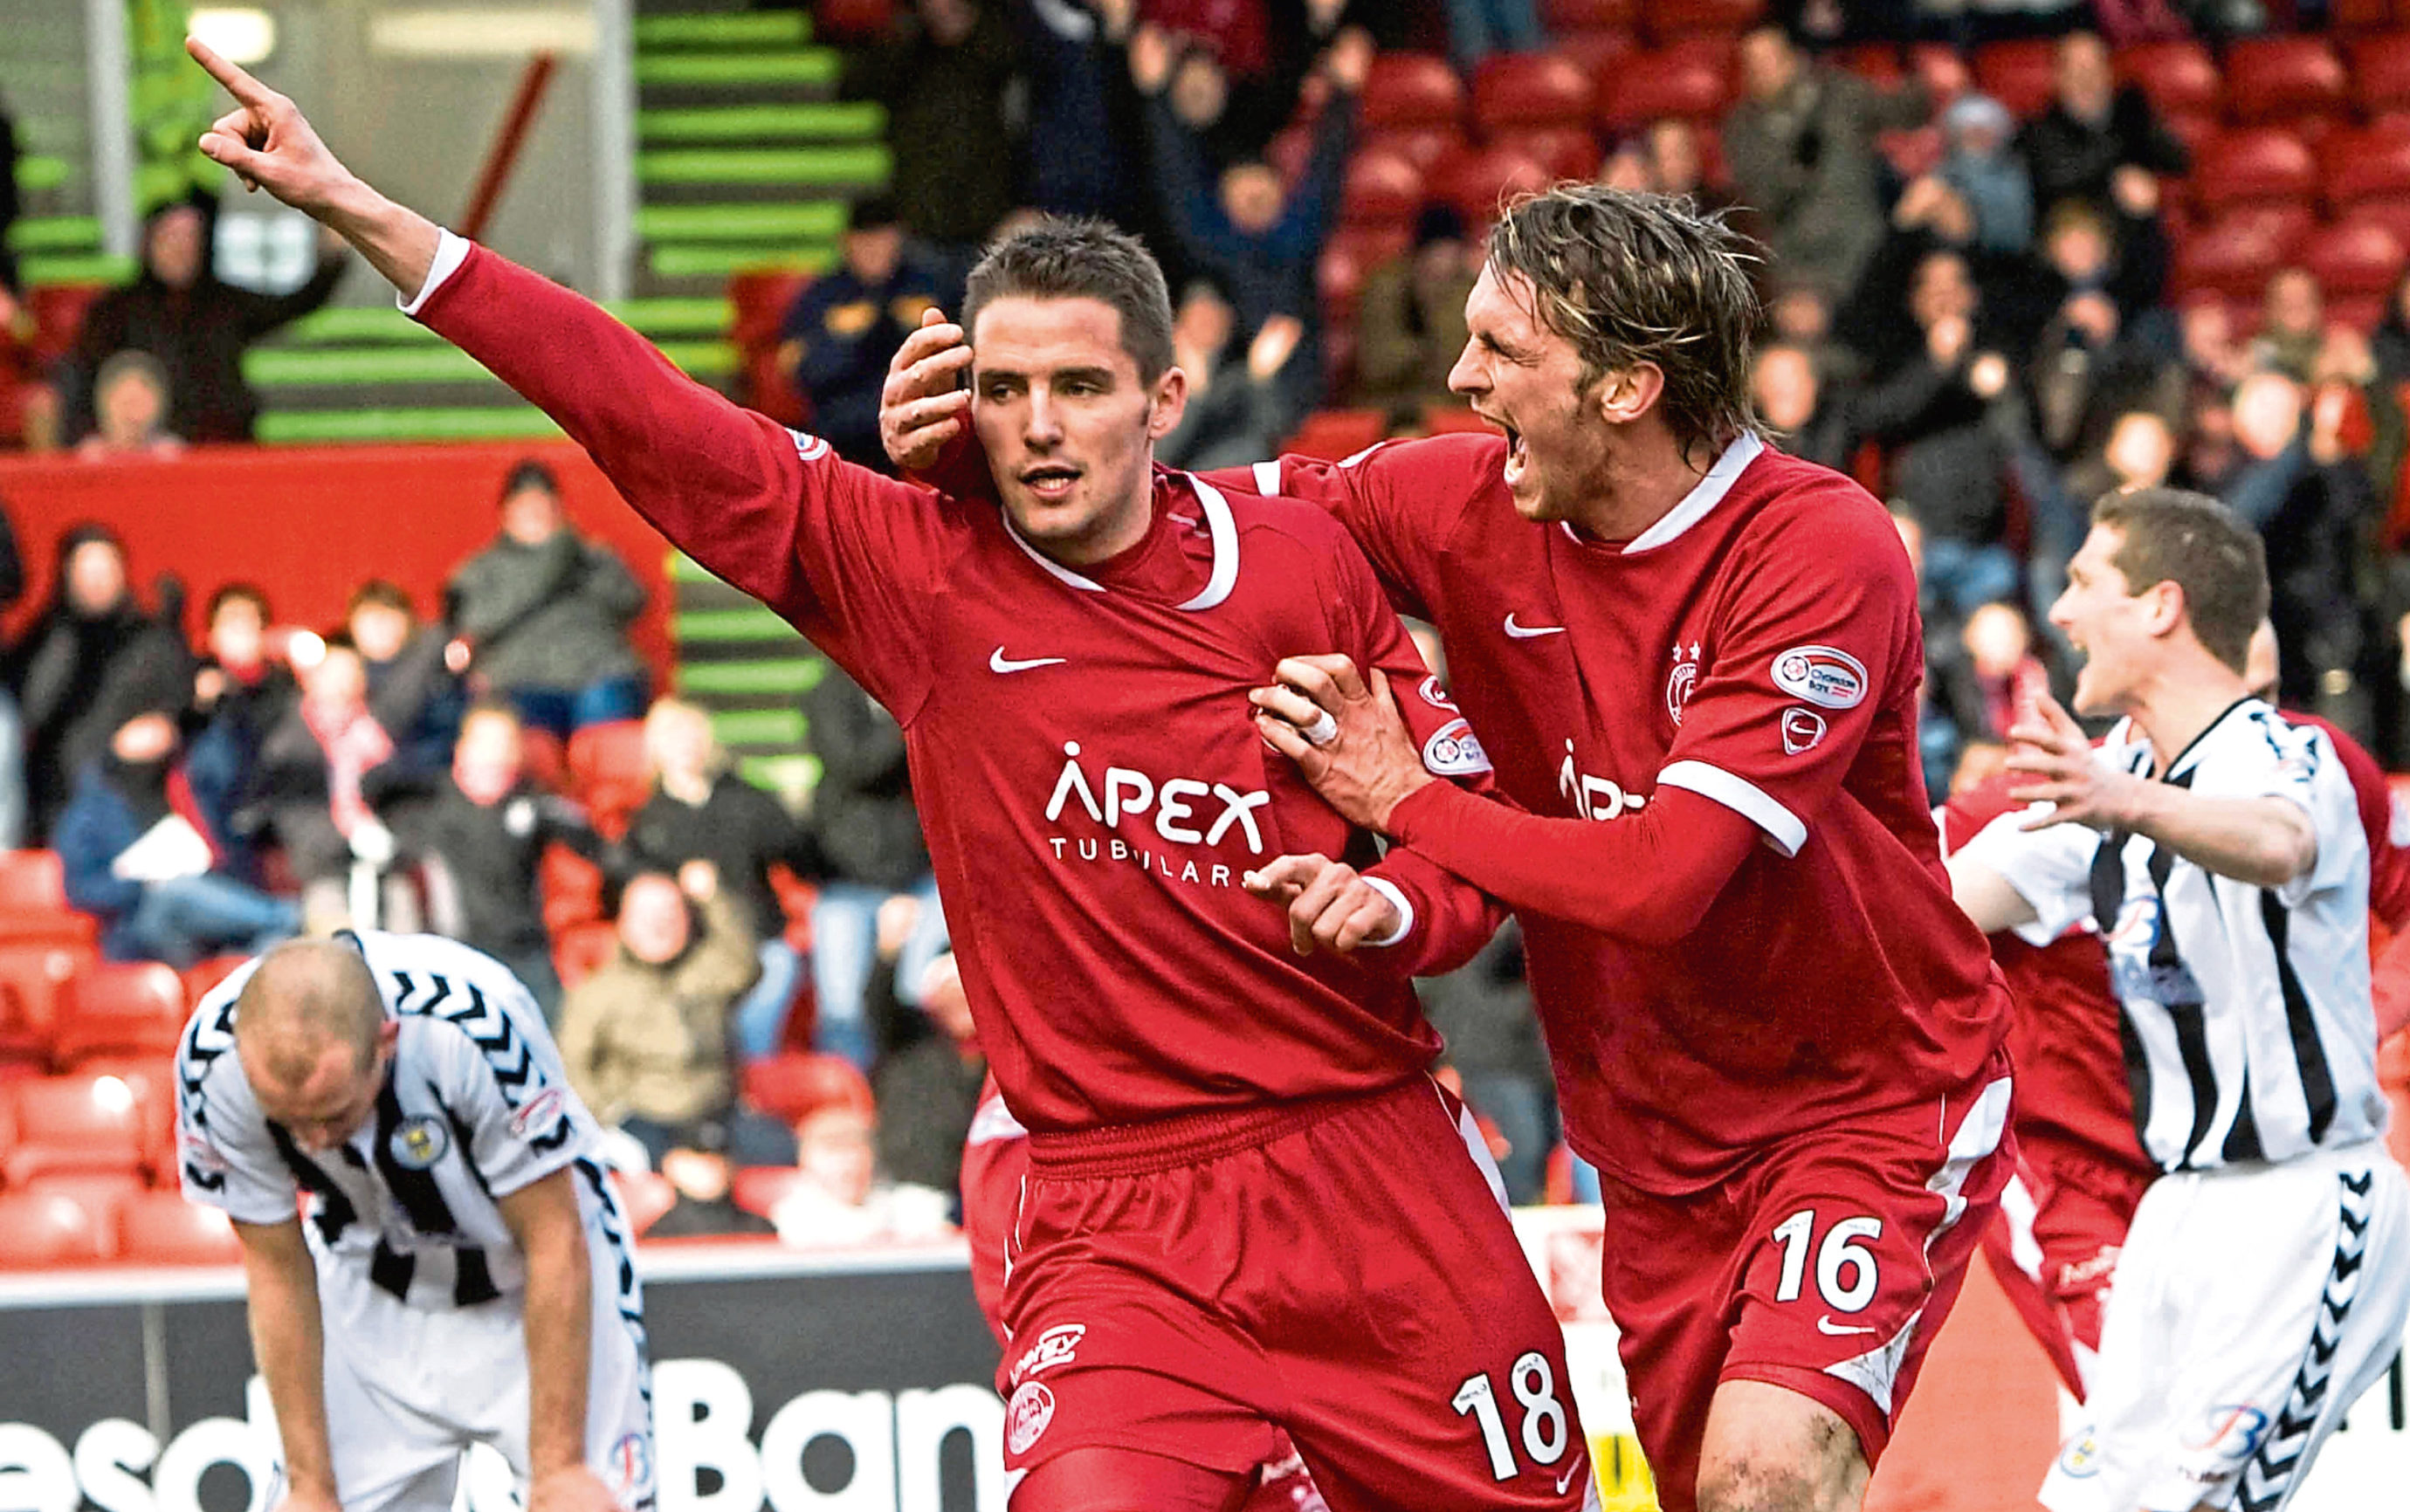 Lee Mair playing for Aberdeen